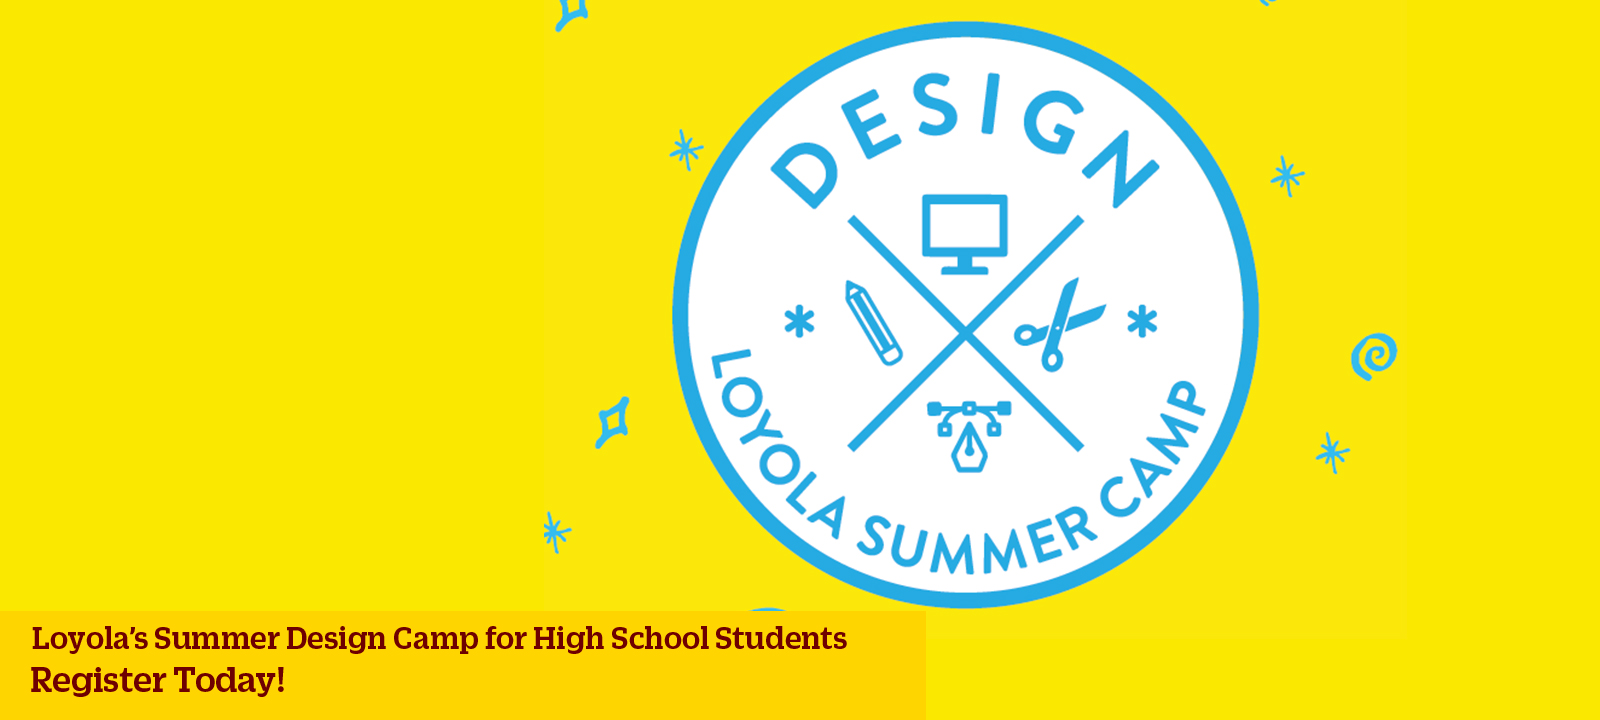 Loyola's Summer Design Camp for High School students is now enrolling.